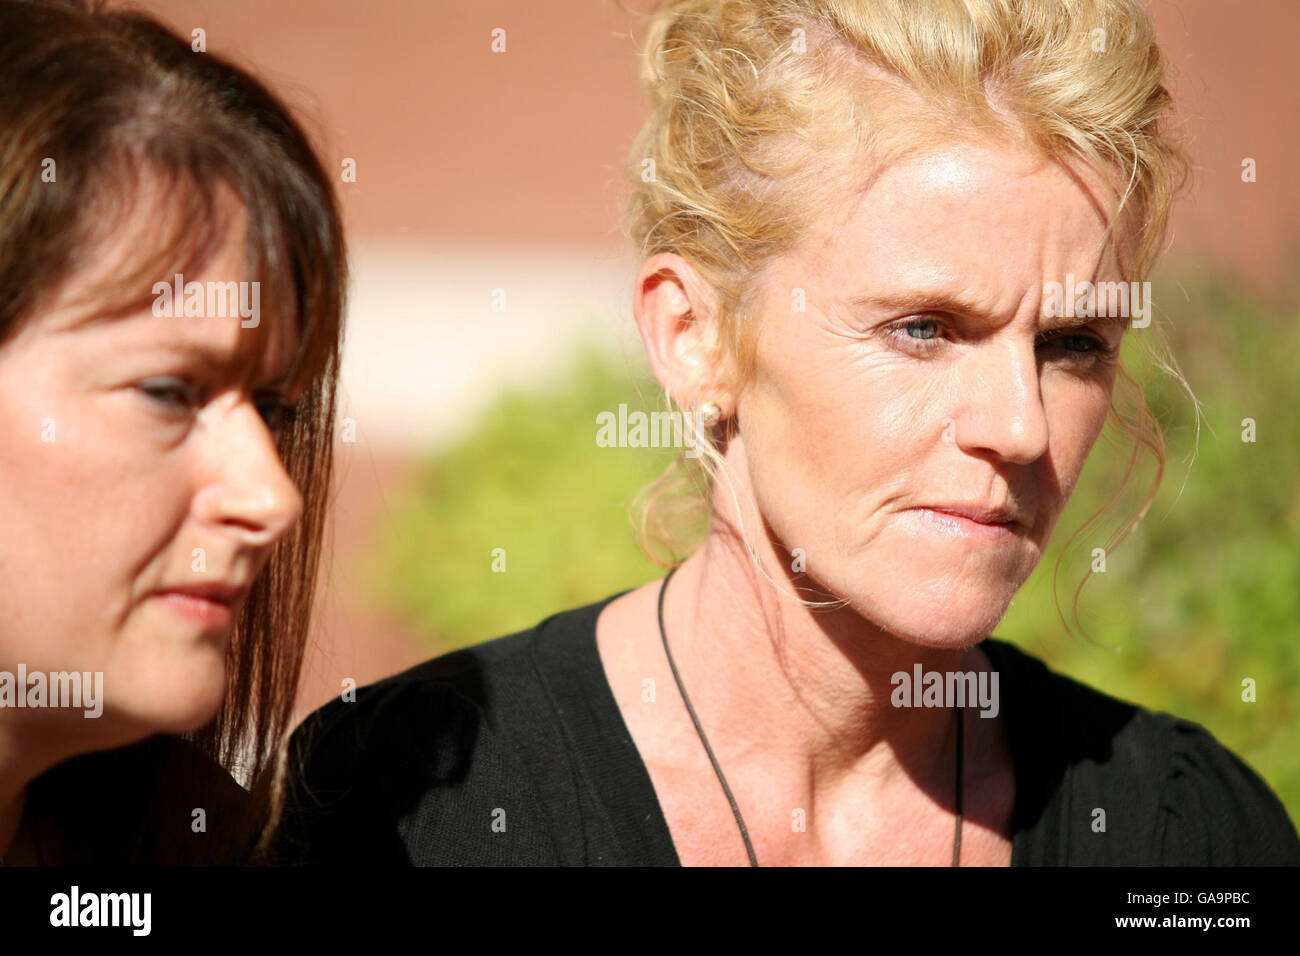 Gill Mccann Stock Photos & Gill Mccann Stock Images - Alamy